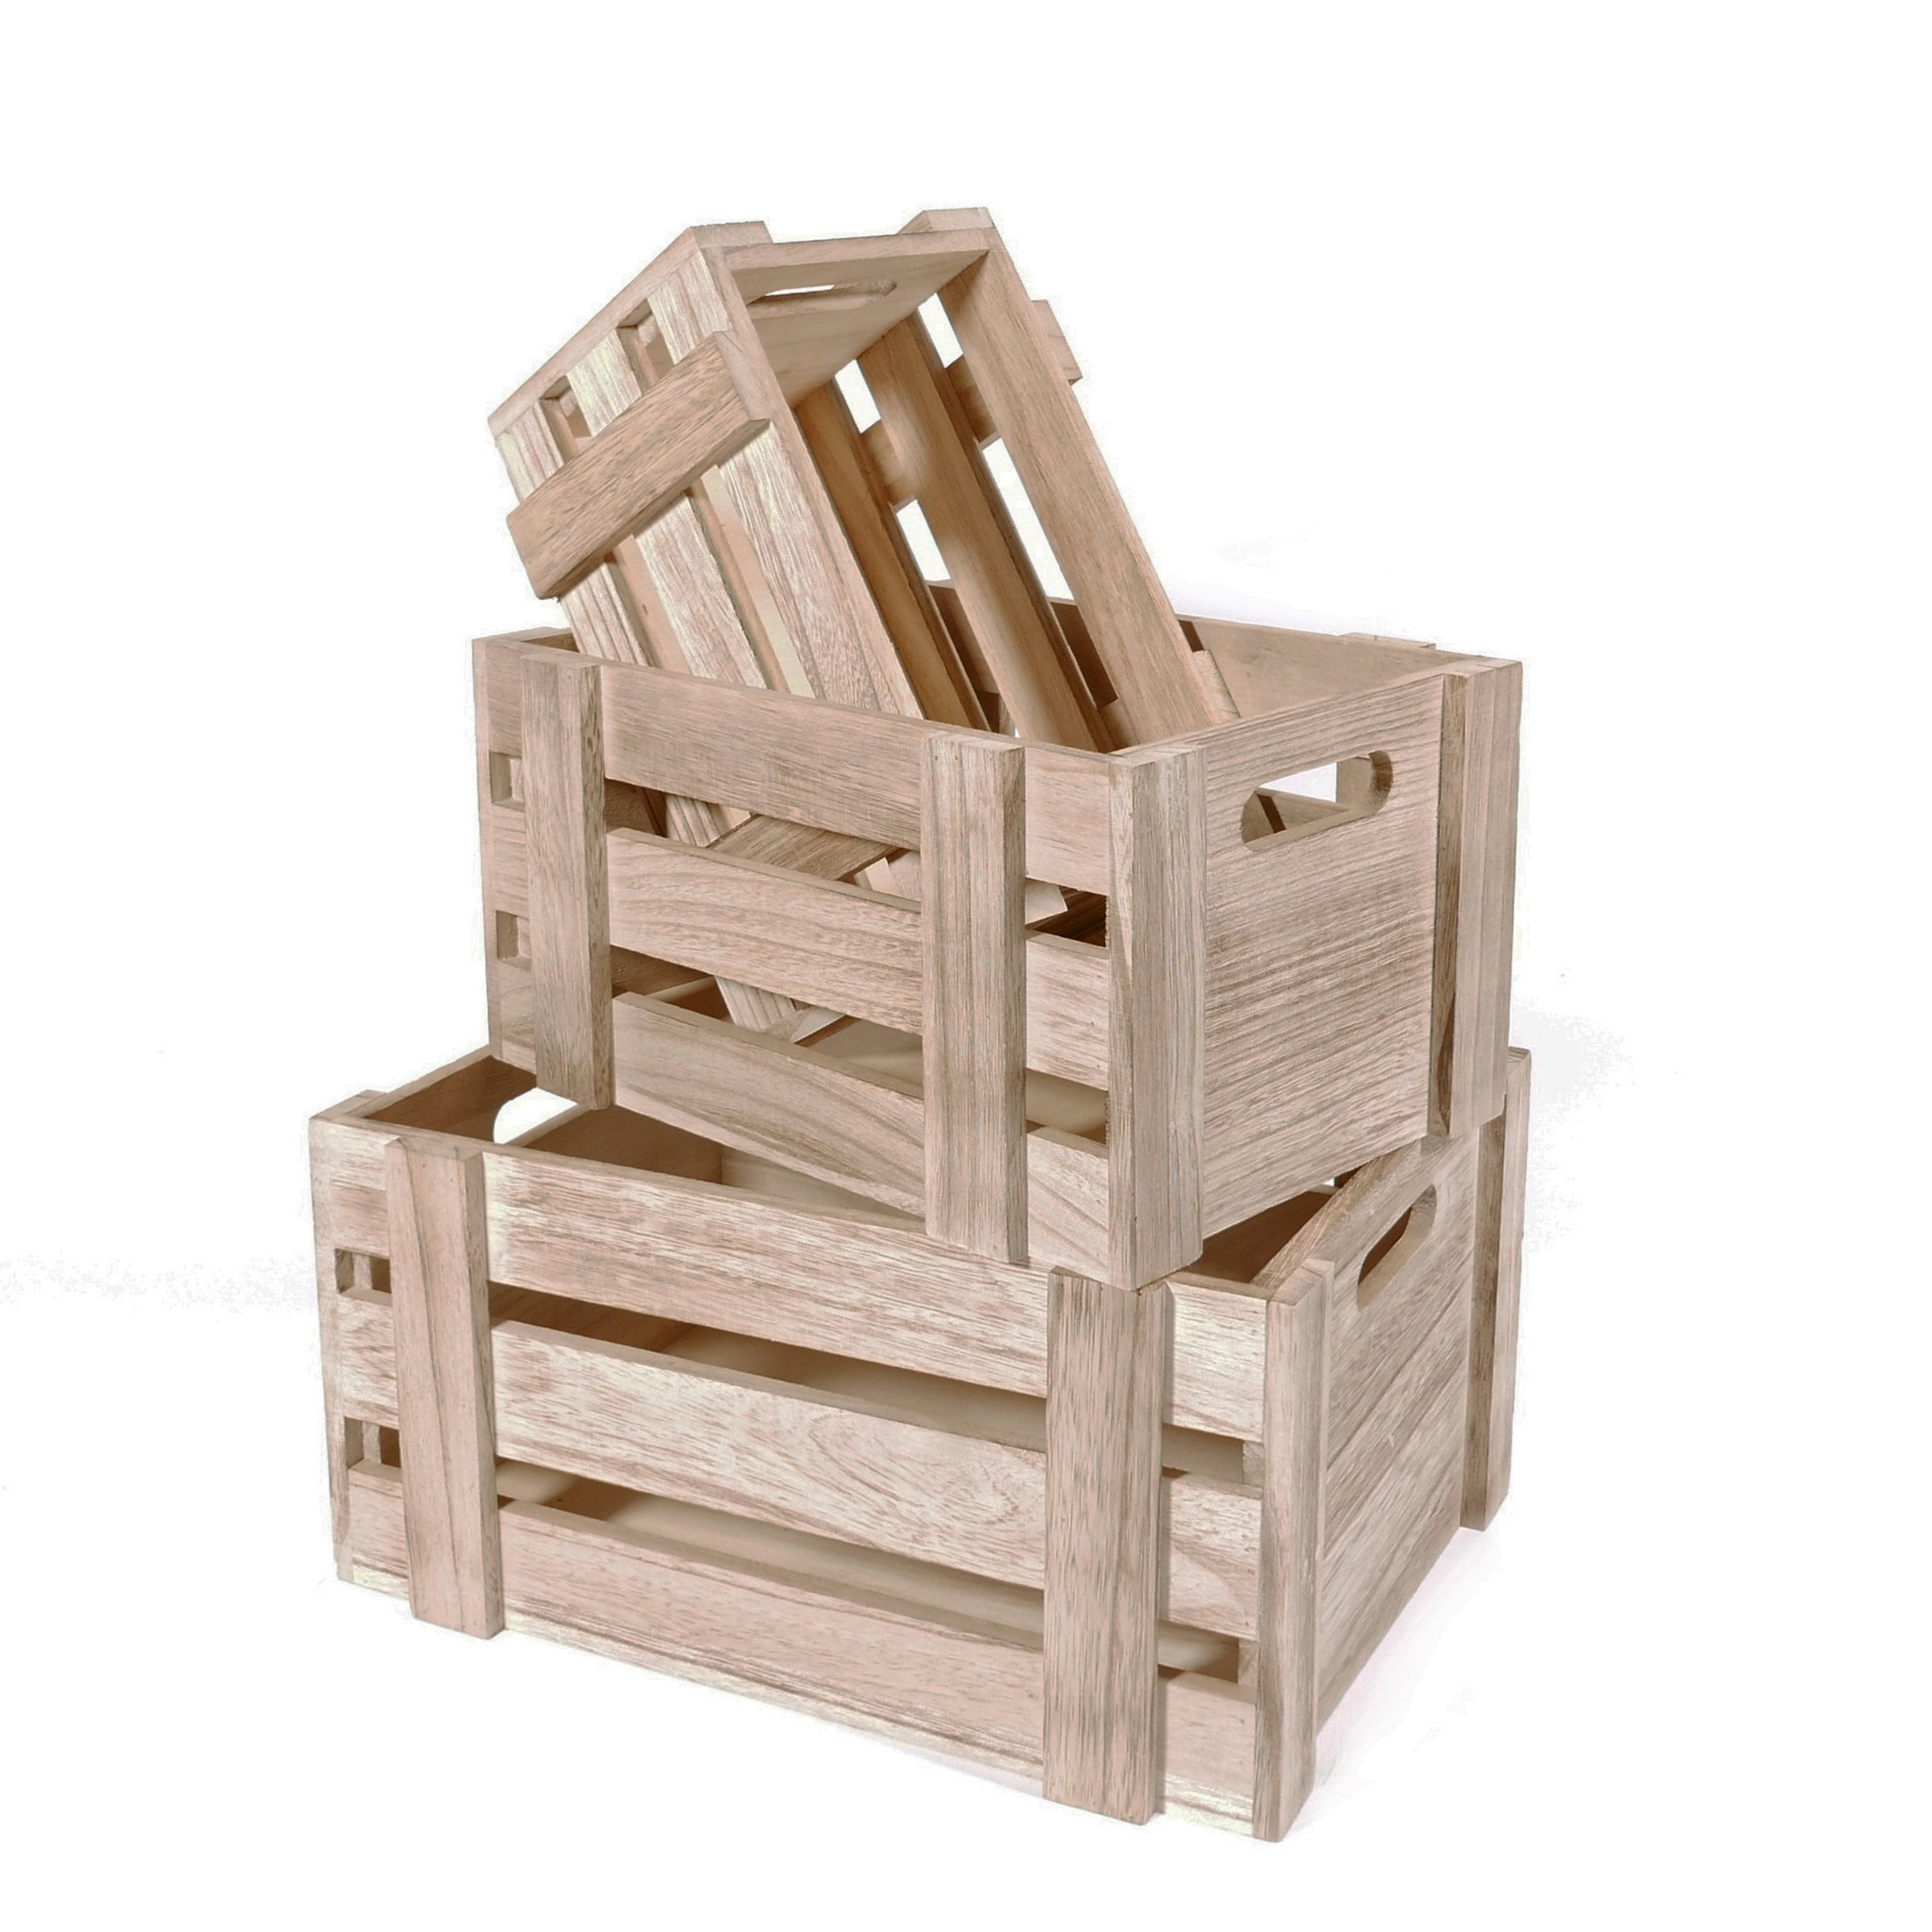 SLPR Decorative Storage Wooden Crates (Set of 3, Natural Wood) | Perfect for Floral Arrangements Gardening Wedding Display Vintage Country Chic Rustic Style by SLPR